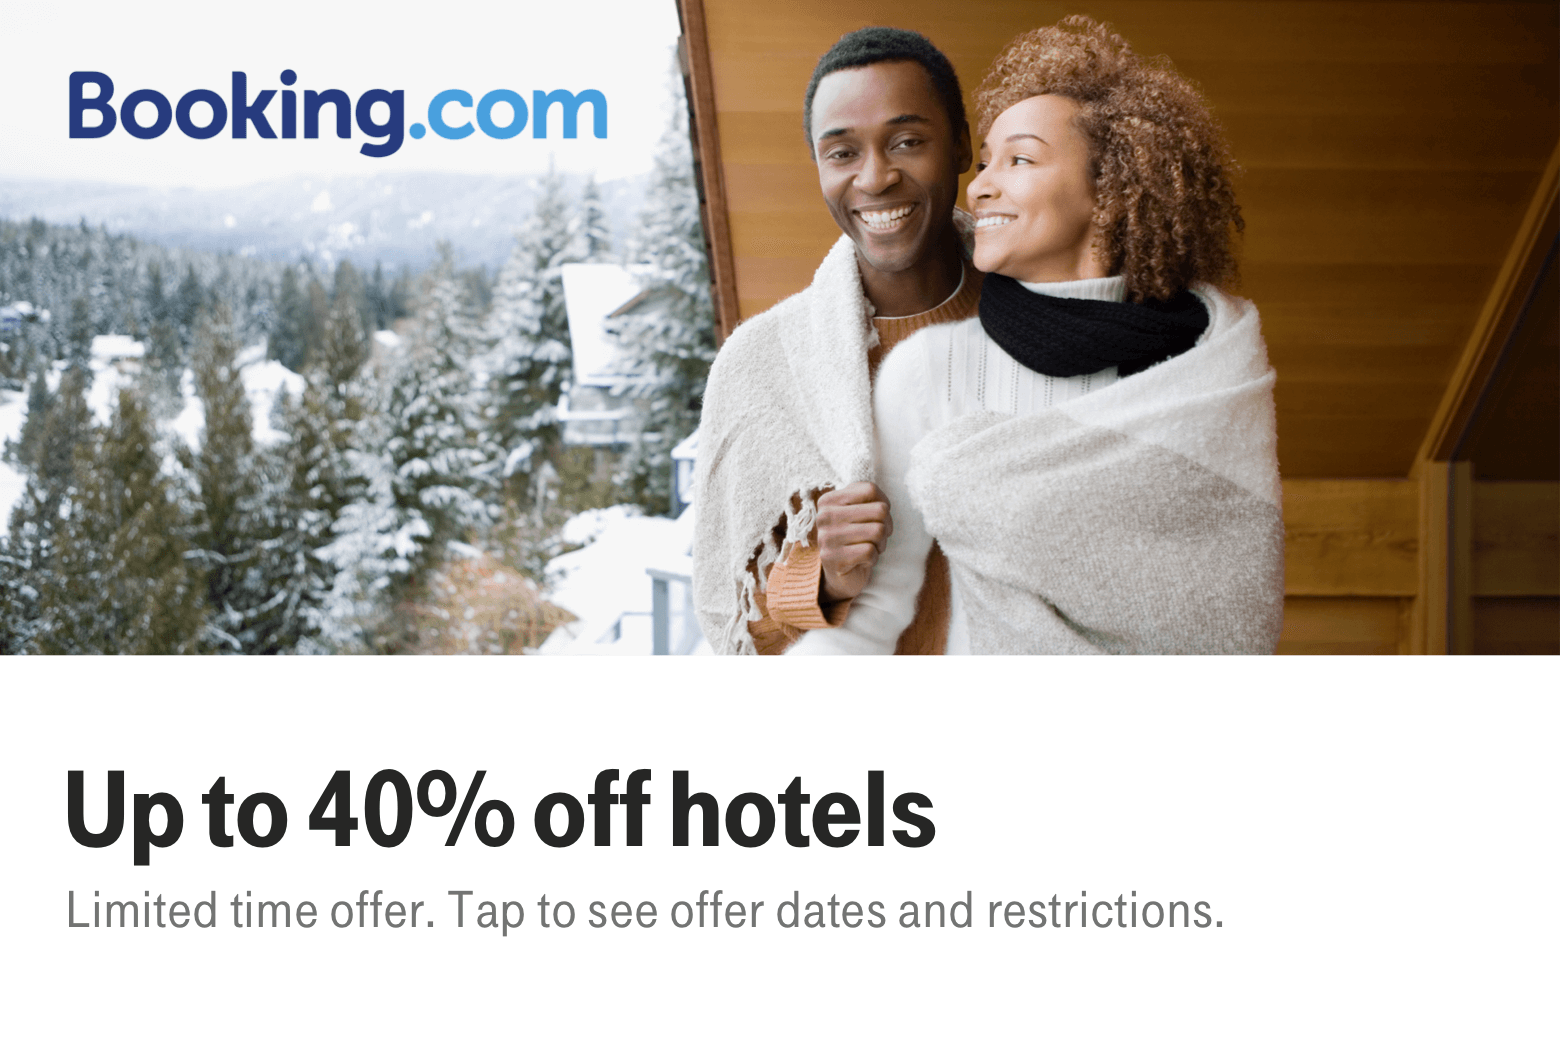 Booking.com Up to 40% off hotels. Limited time offer. Tap to see offer dates and restrictions.